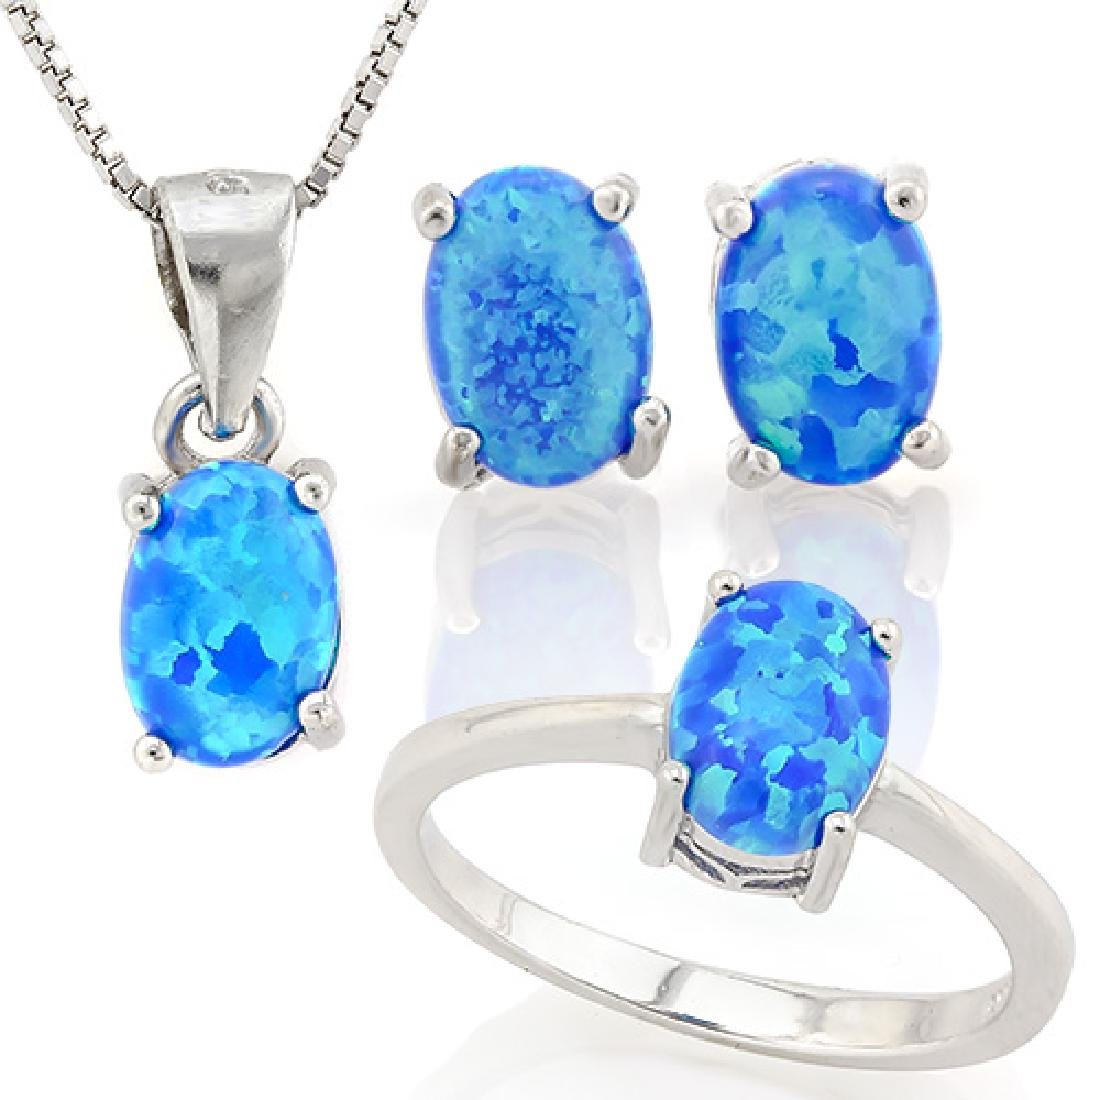 2 CARAT CREATED BLUE FIRE OPAL 925 STERLING SILVER SET